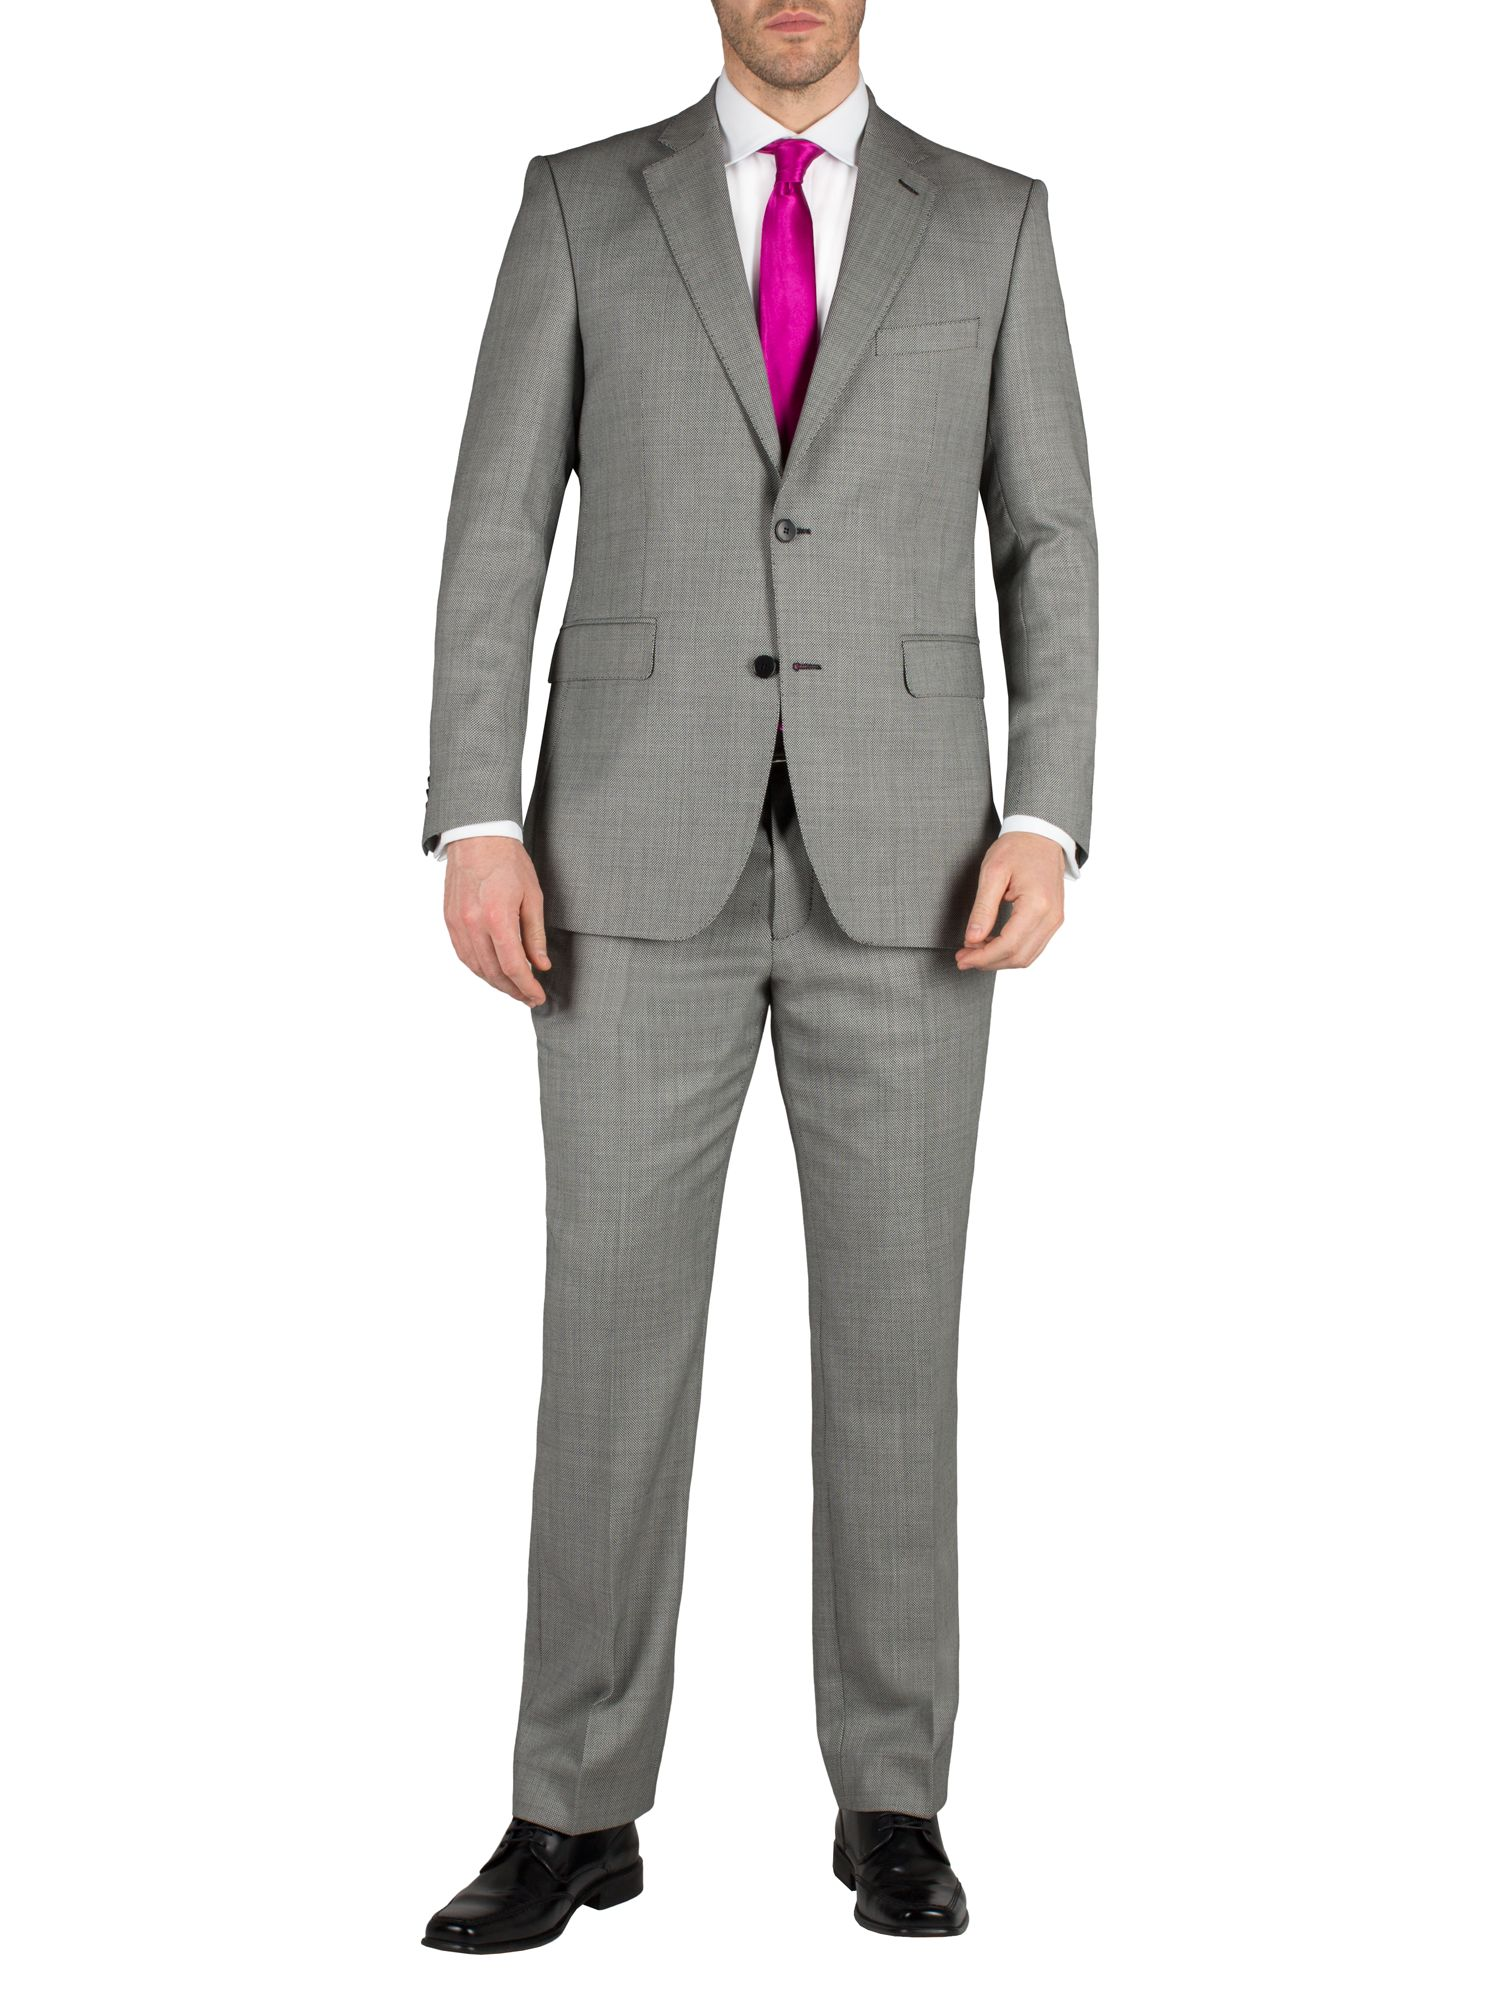 Birdseye notch suit